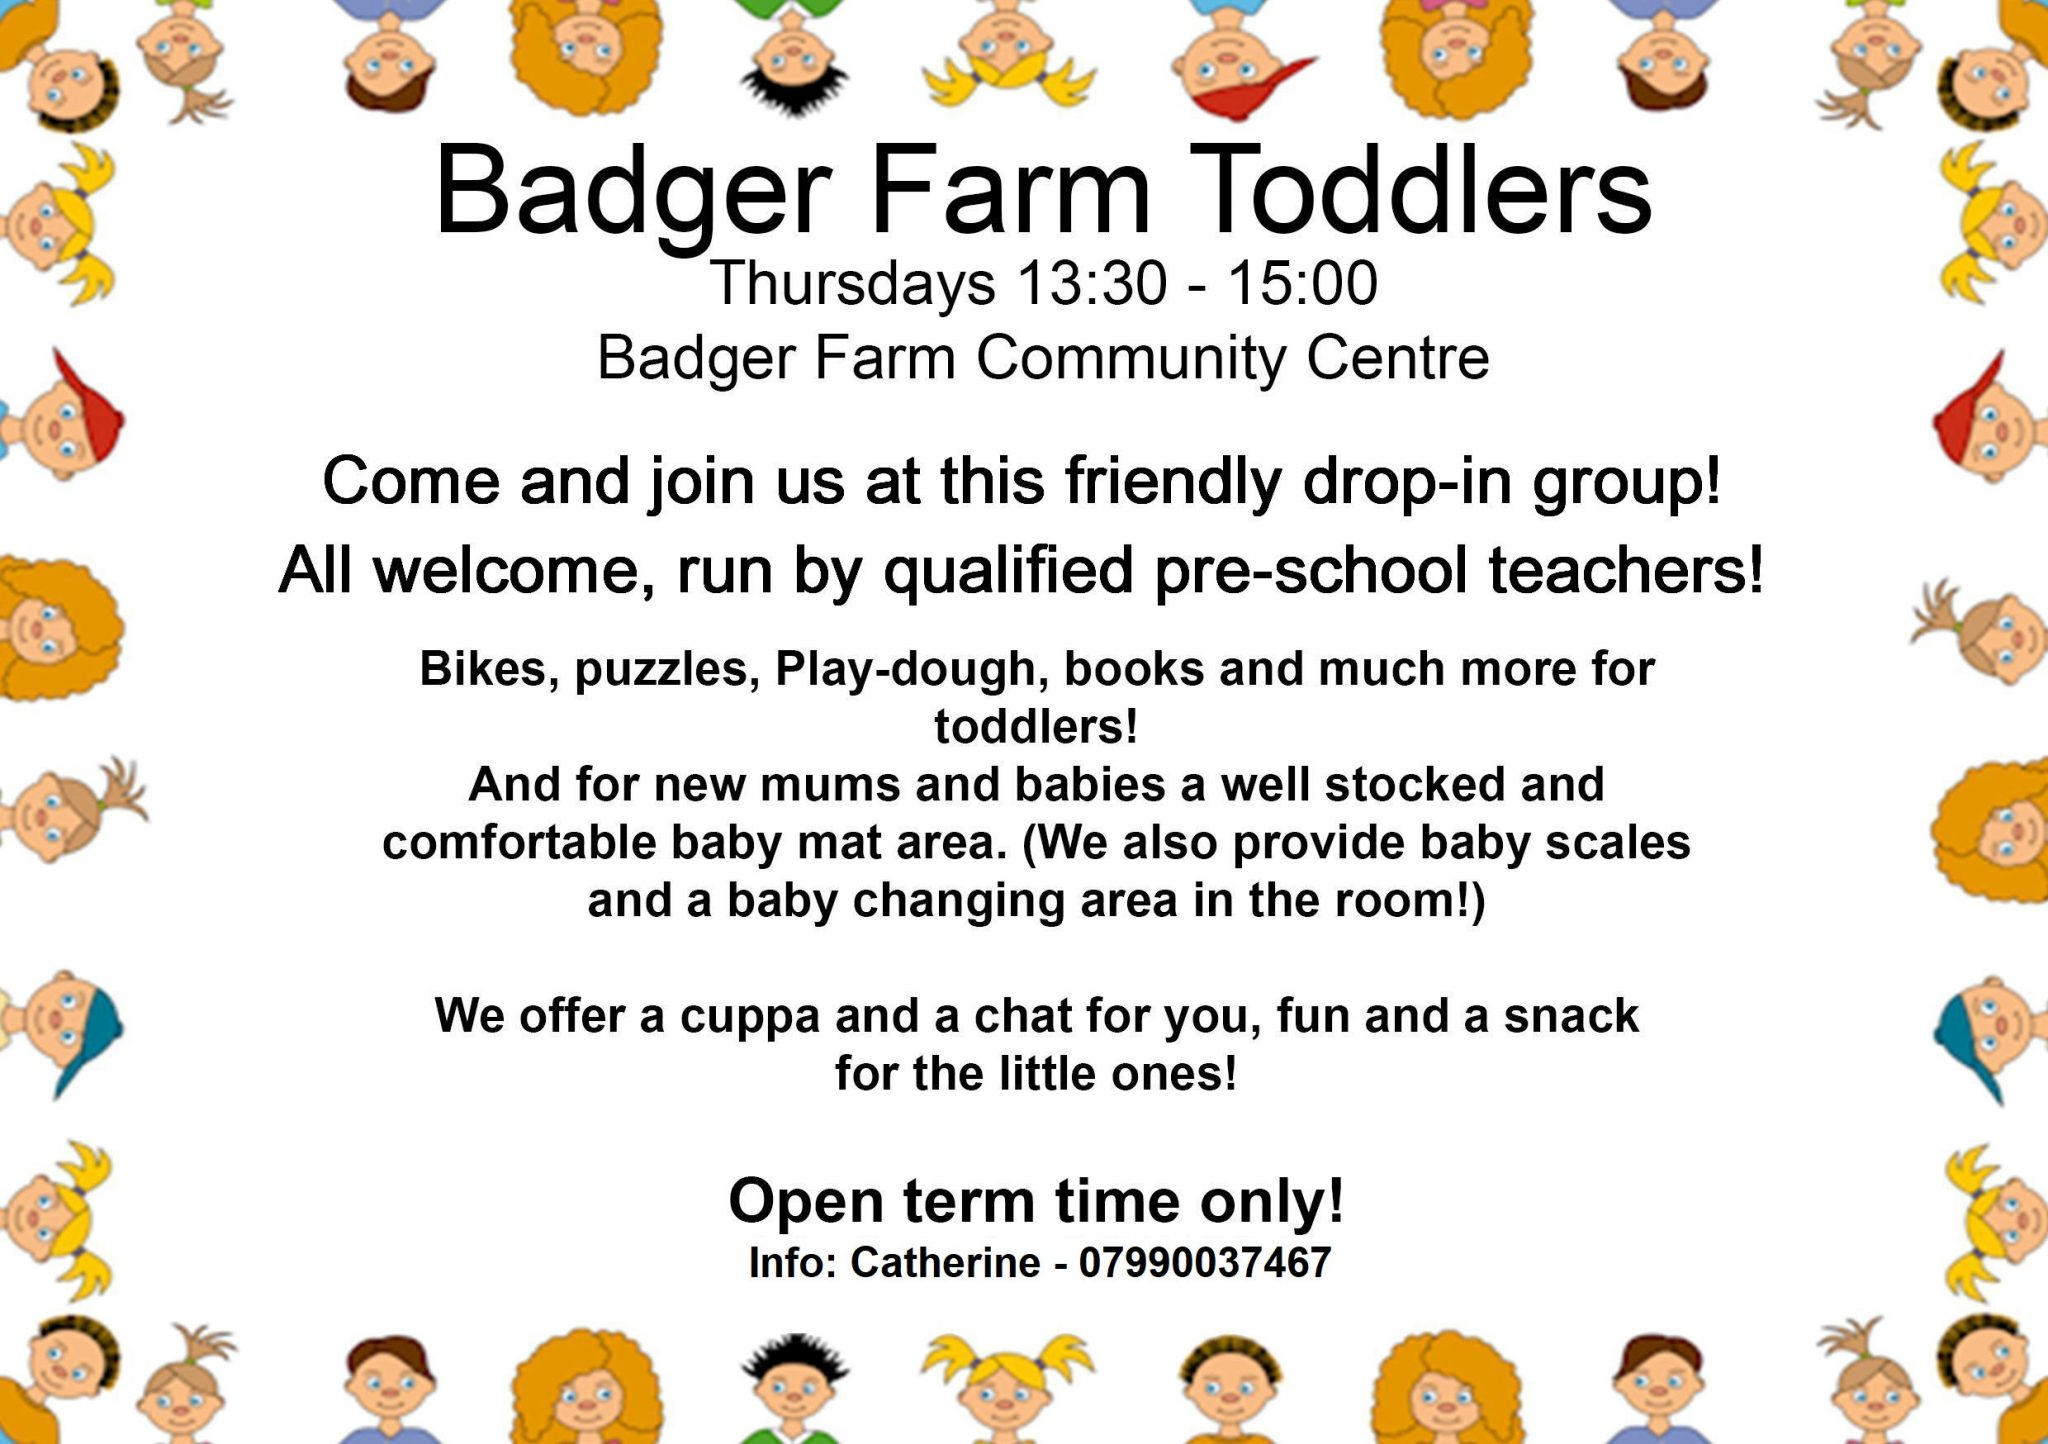 Badger Farm Toddlers every Thursday 1pm to 3pm